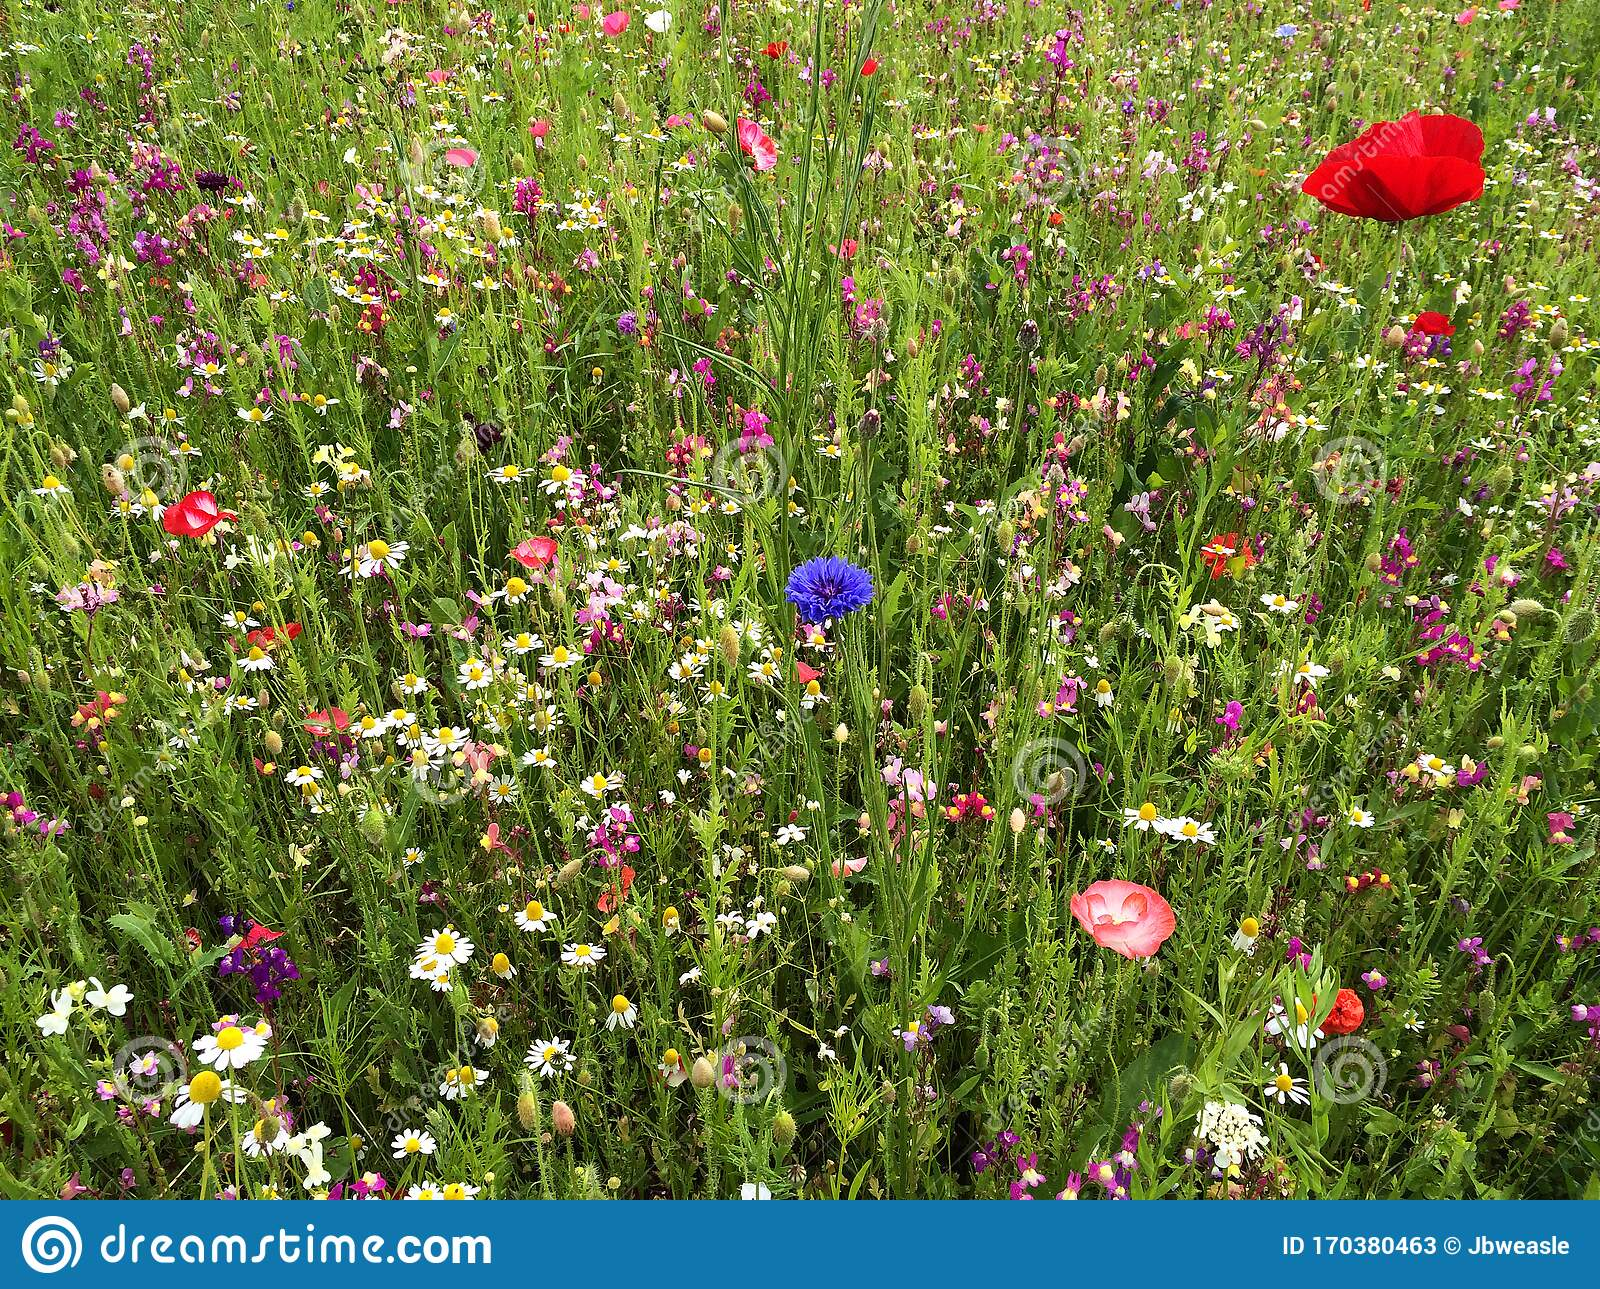 Colorful Wildflowers In A Field Poppies Daisies And Cornflower Red Blue Pink And White Wild Flowers With Green Grass Stock Image Image Of Meadow Blossom 170380463